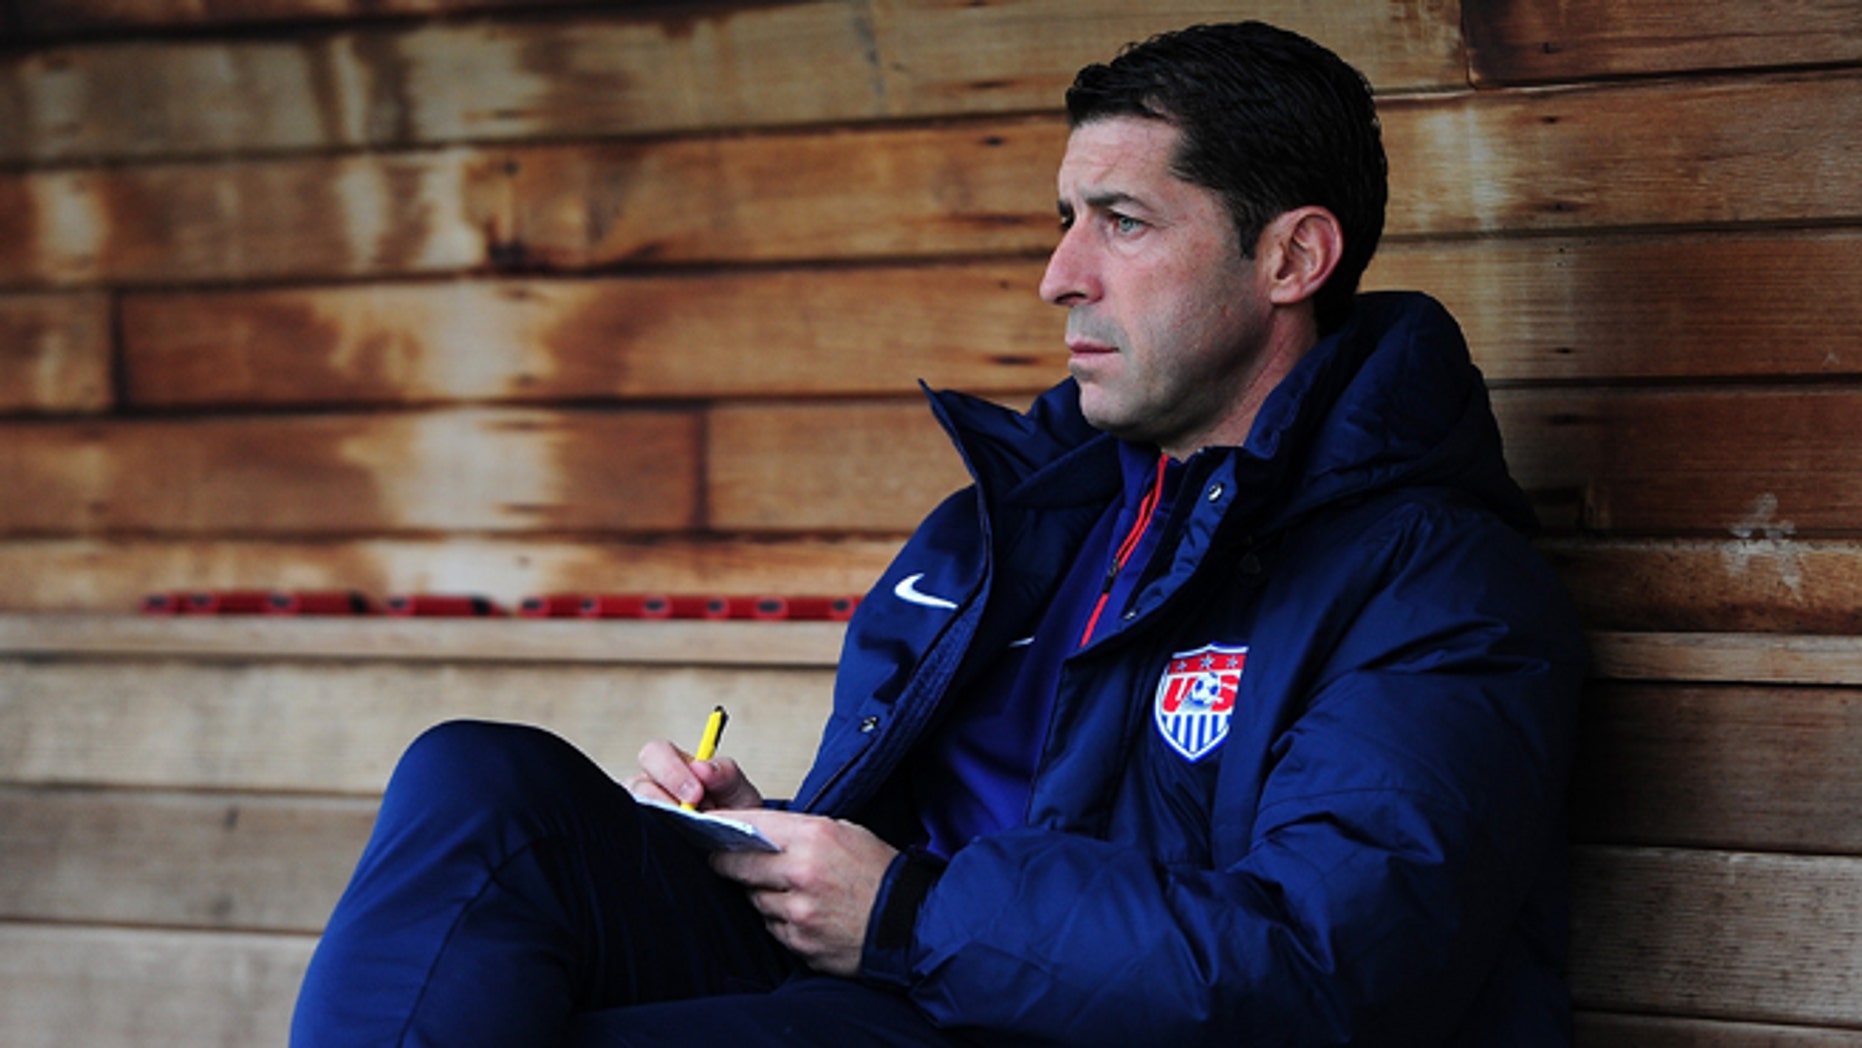 PLYMOUTH, ENGLAND - MARCH 29:  Tab Ramos, Head Coach of USA U20s looks on ahead of the International Friendly match between England U20 and USA U20 at Home Park on March 29, 2015 in Plymouth, England.  (Photo by Dan Mullan/Getty Images)